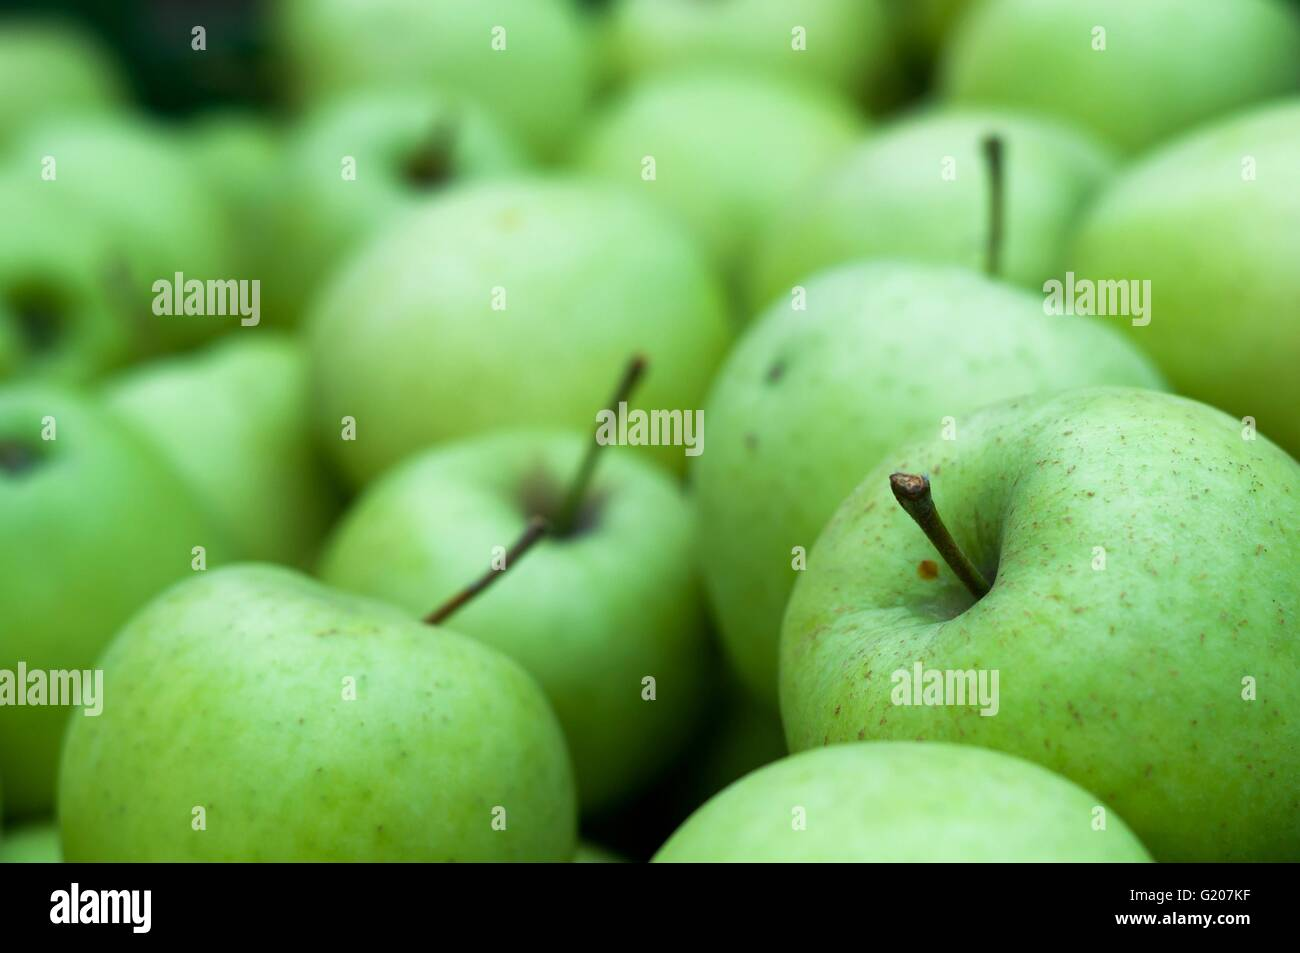 Heap of fresh green Granny Smith apples. Background image - Stock Image